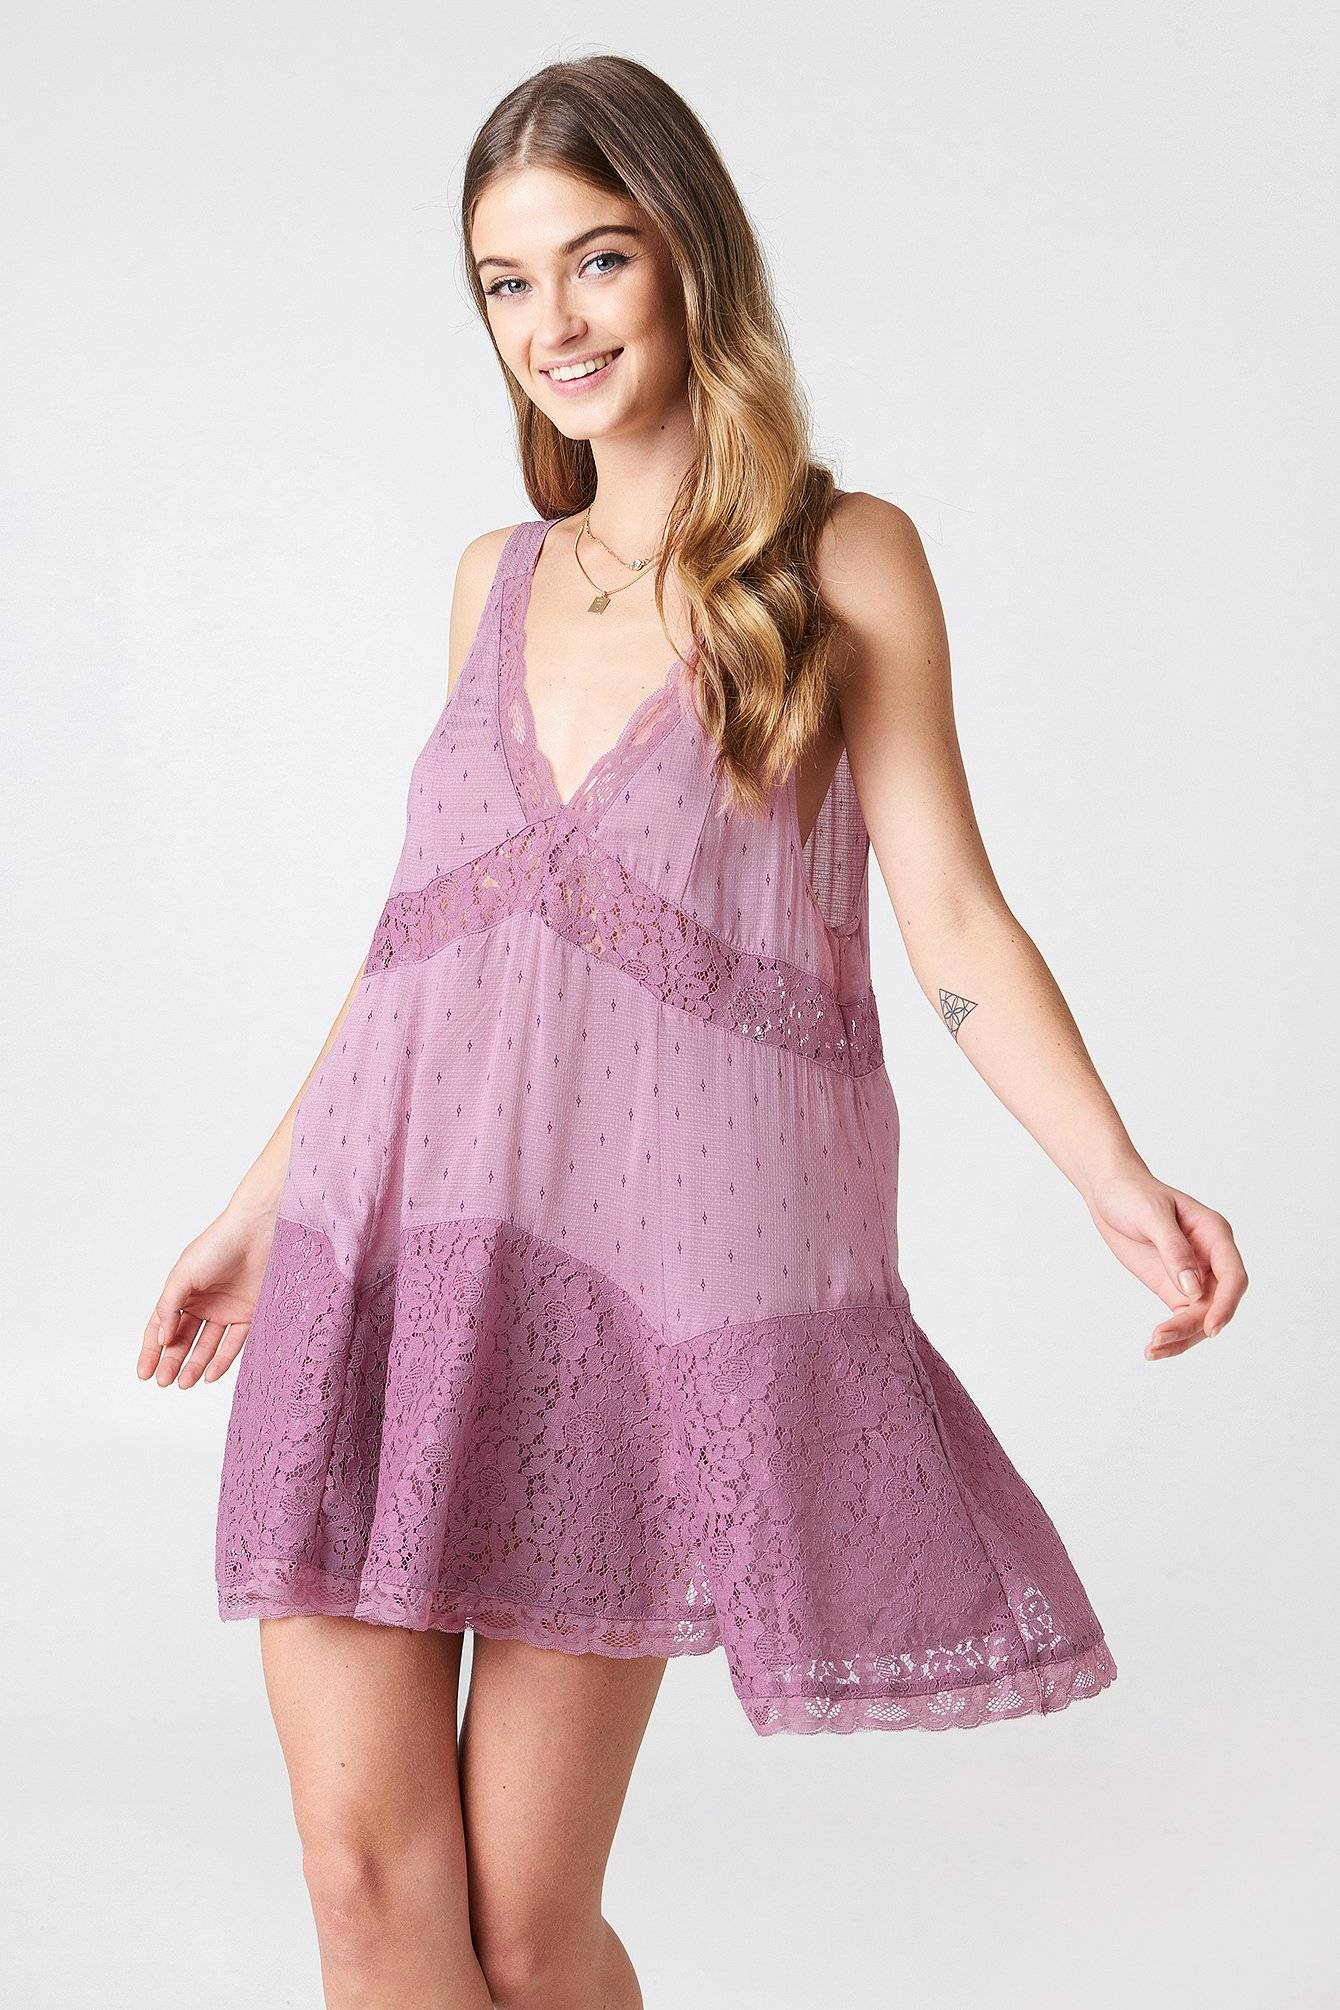 Free People Any Party Slip Dress - Pink